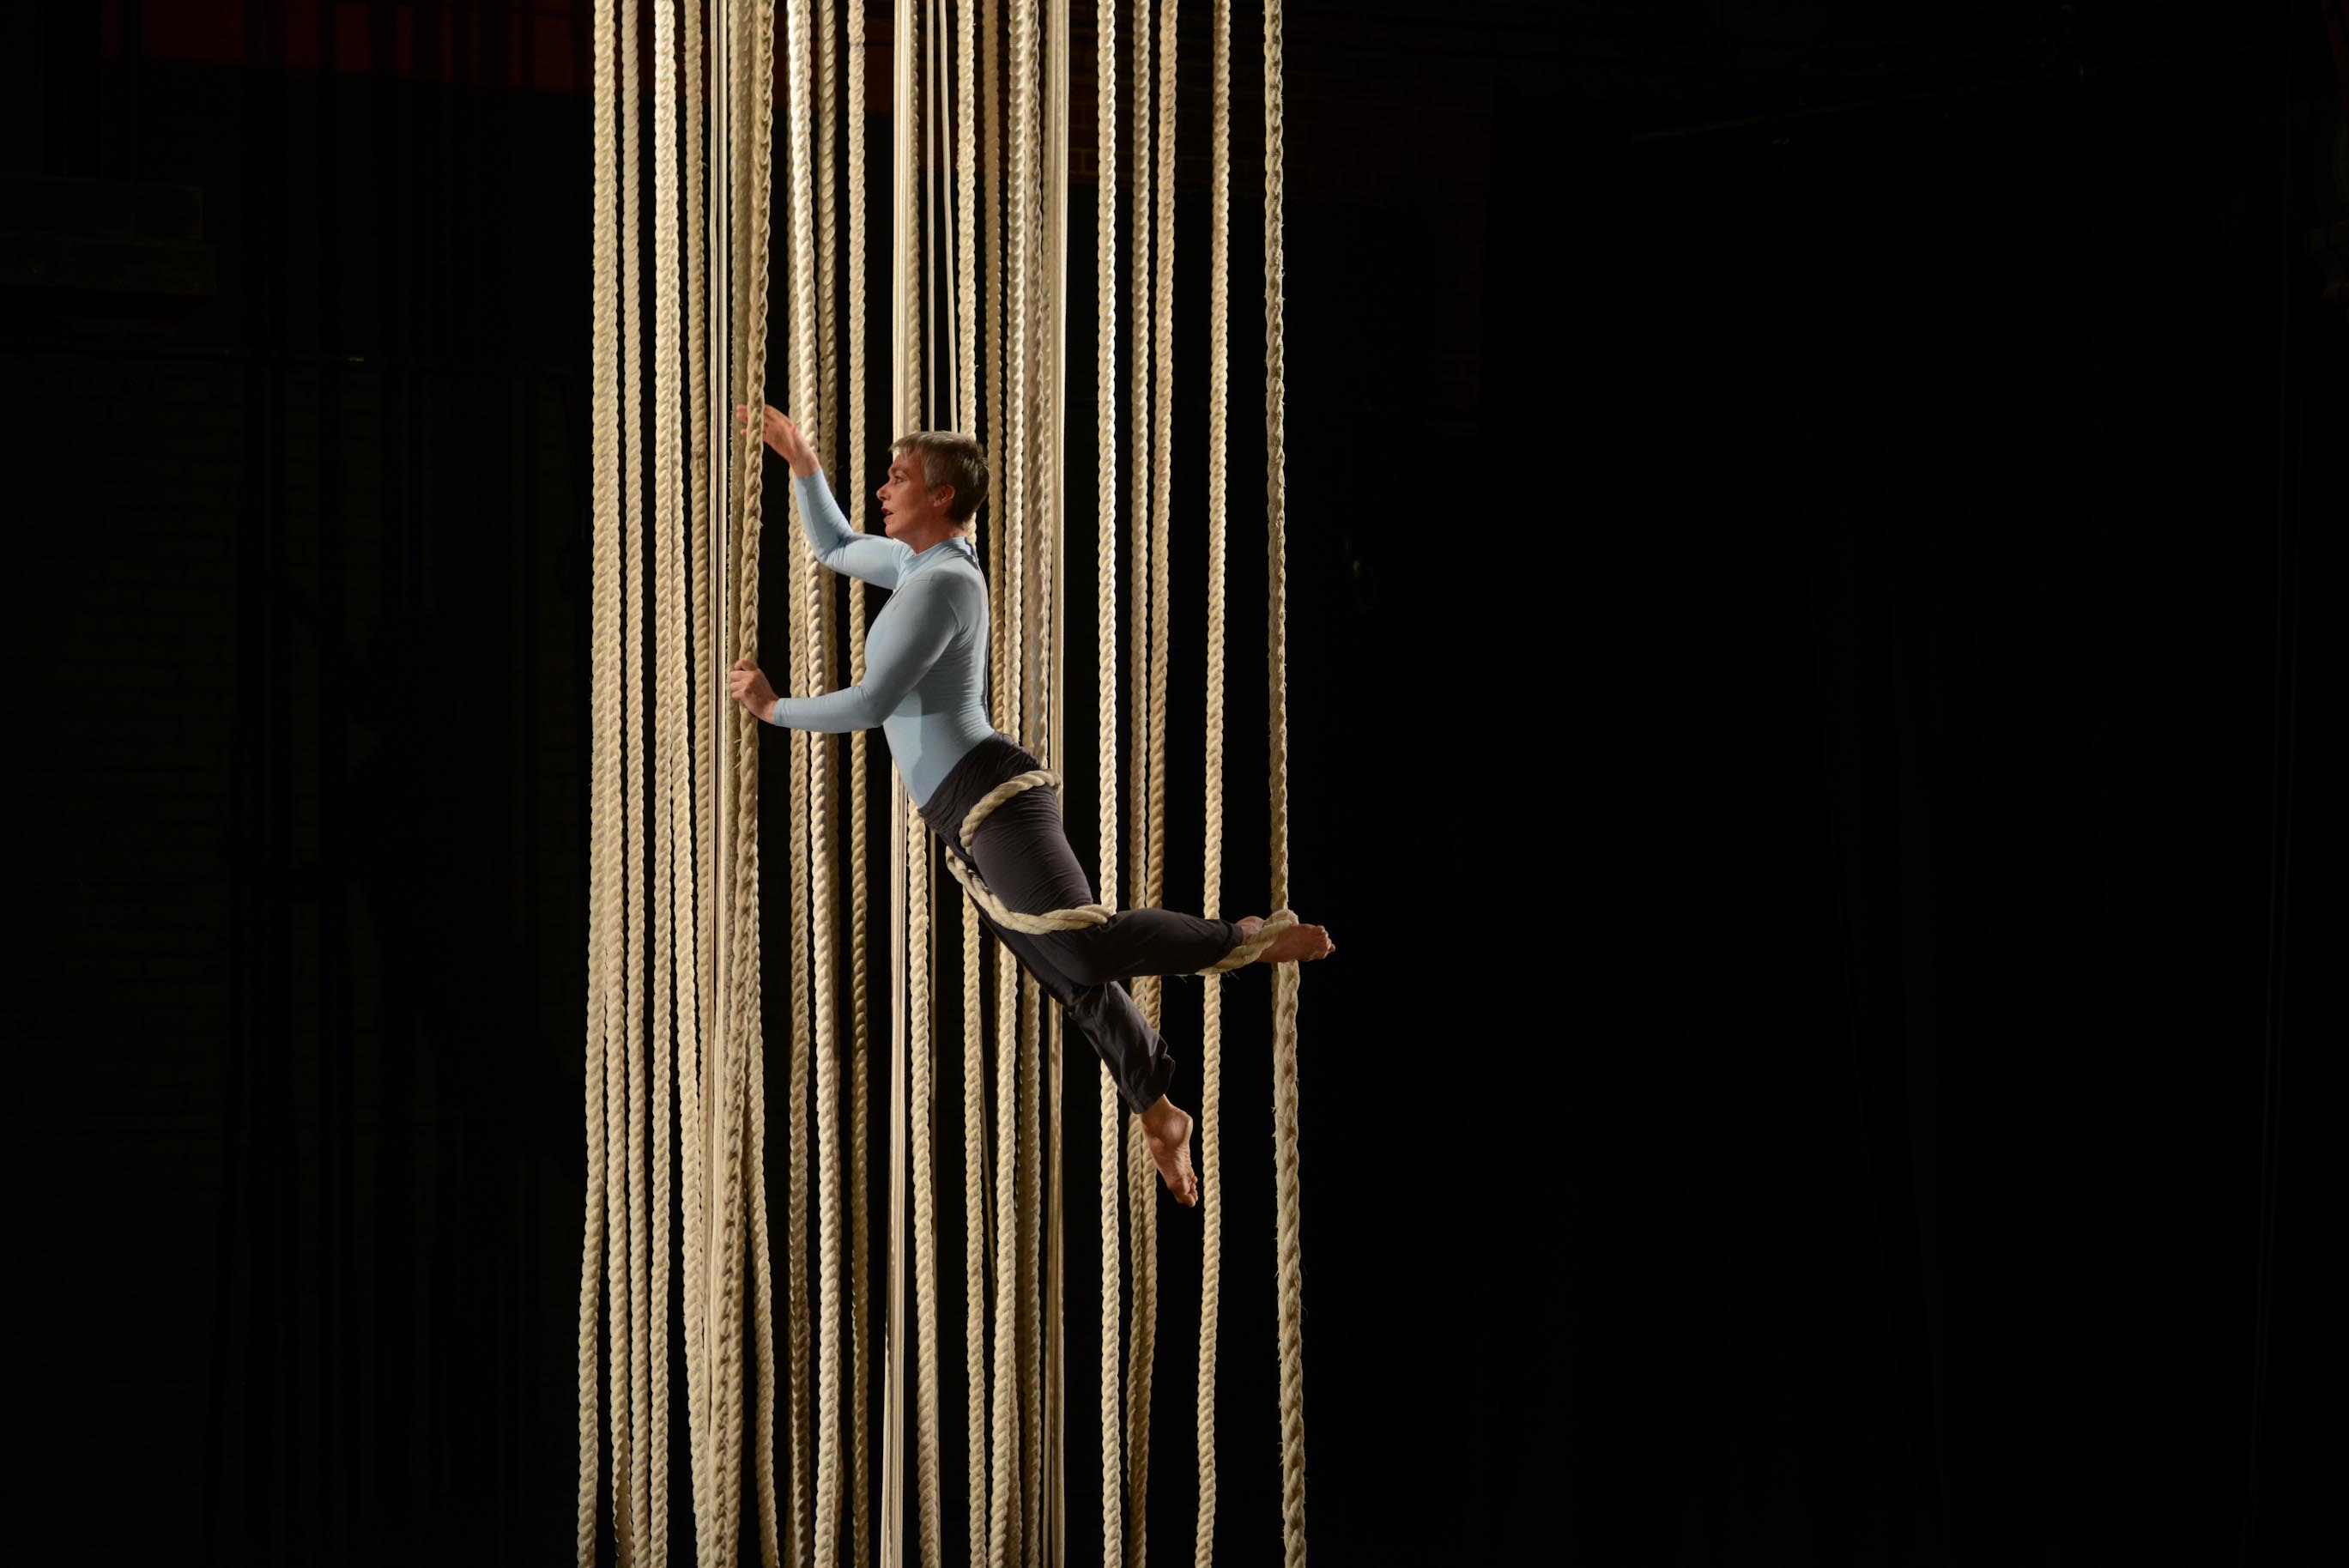 An aerialist in a dark room holds herself up whilst dangling in lots of ropes.